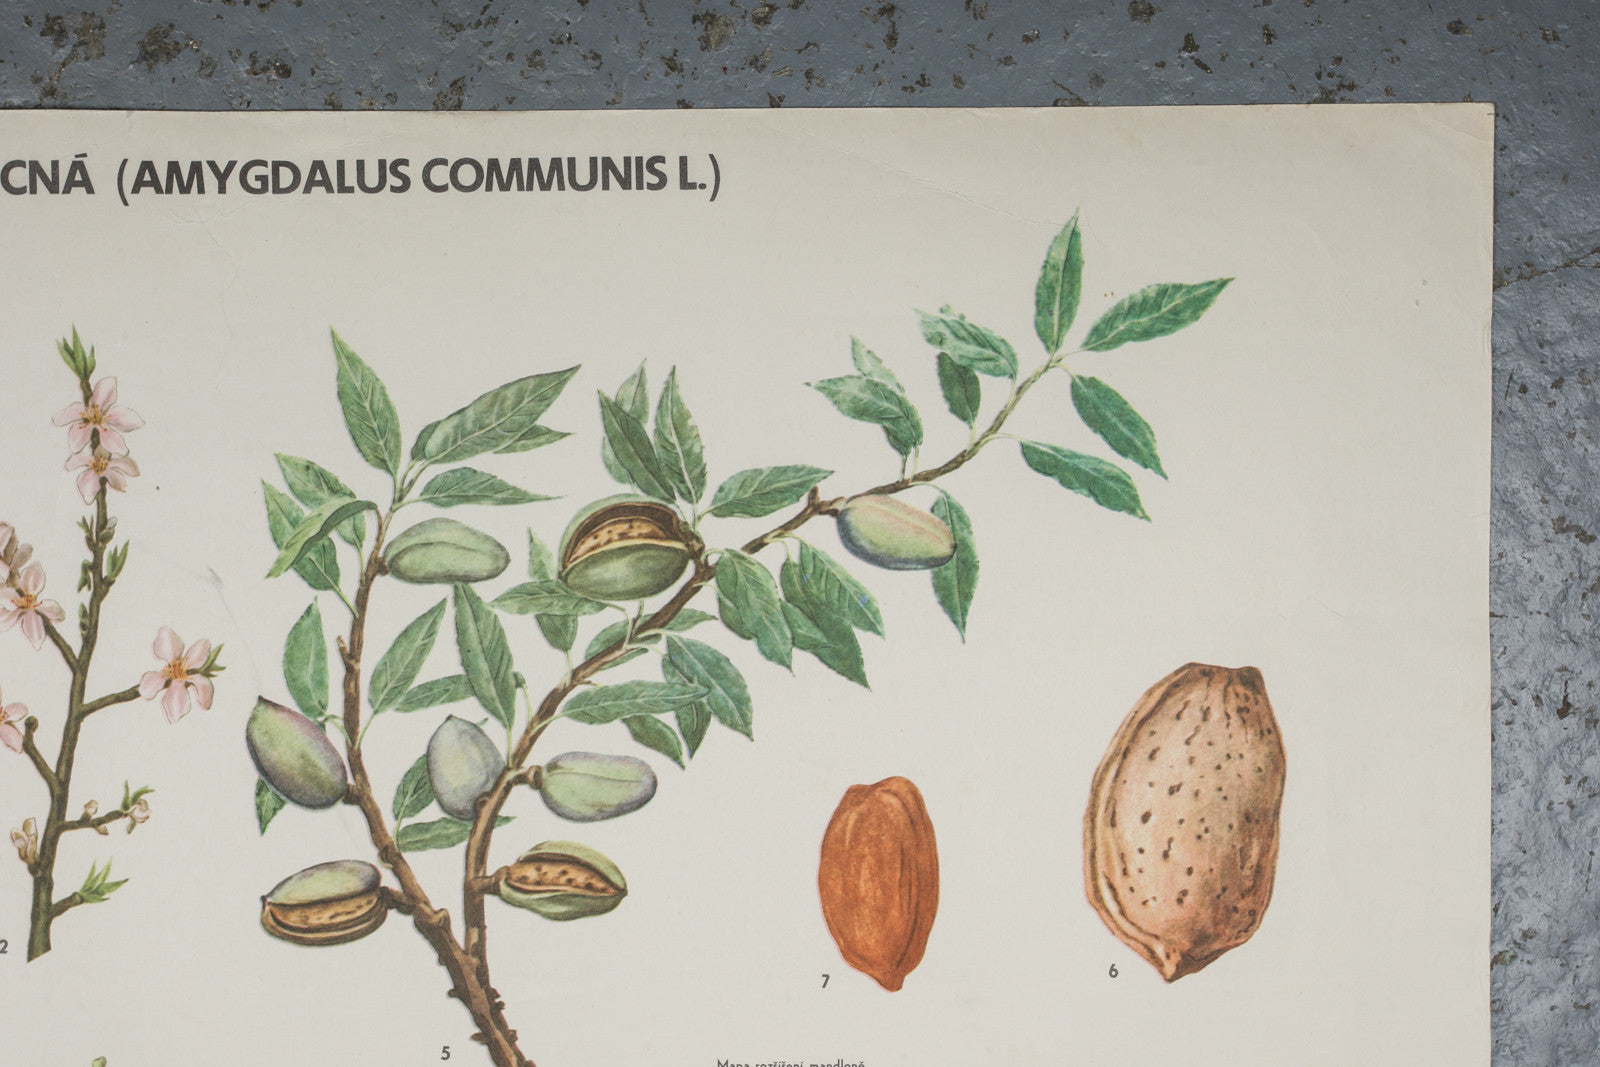 A 1972 botanical school wall chart of an almond available for sale from Industrious Interiors, an online vintage furniture and homeware store based in Nottingham, England.